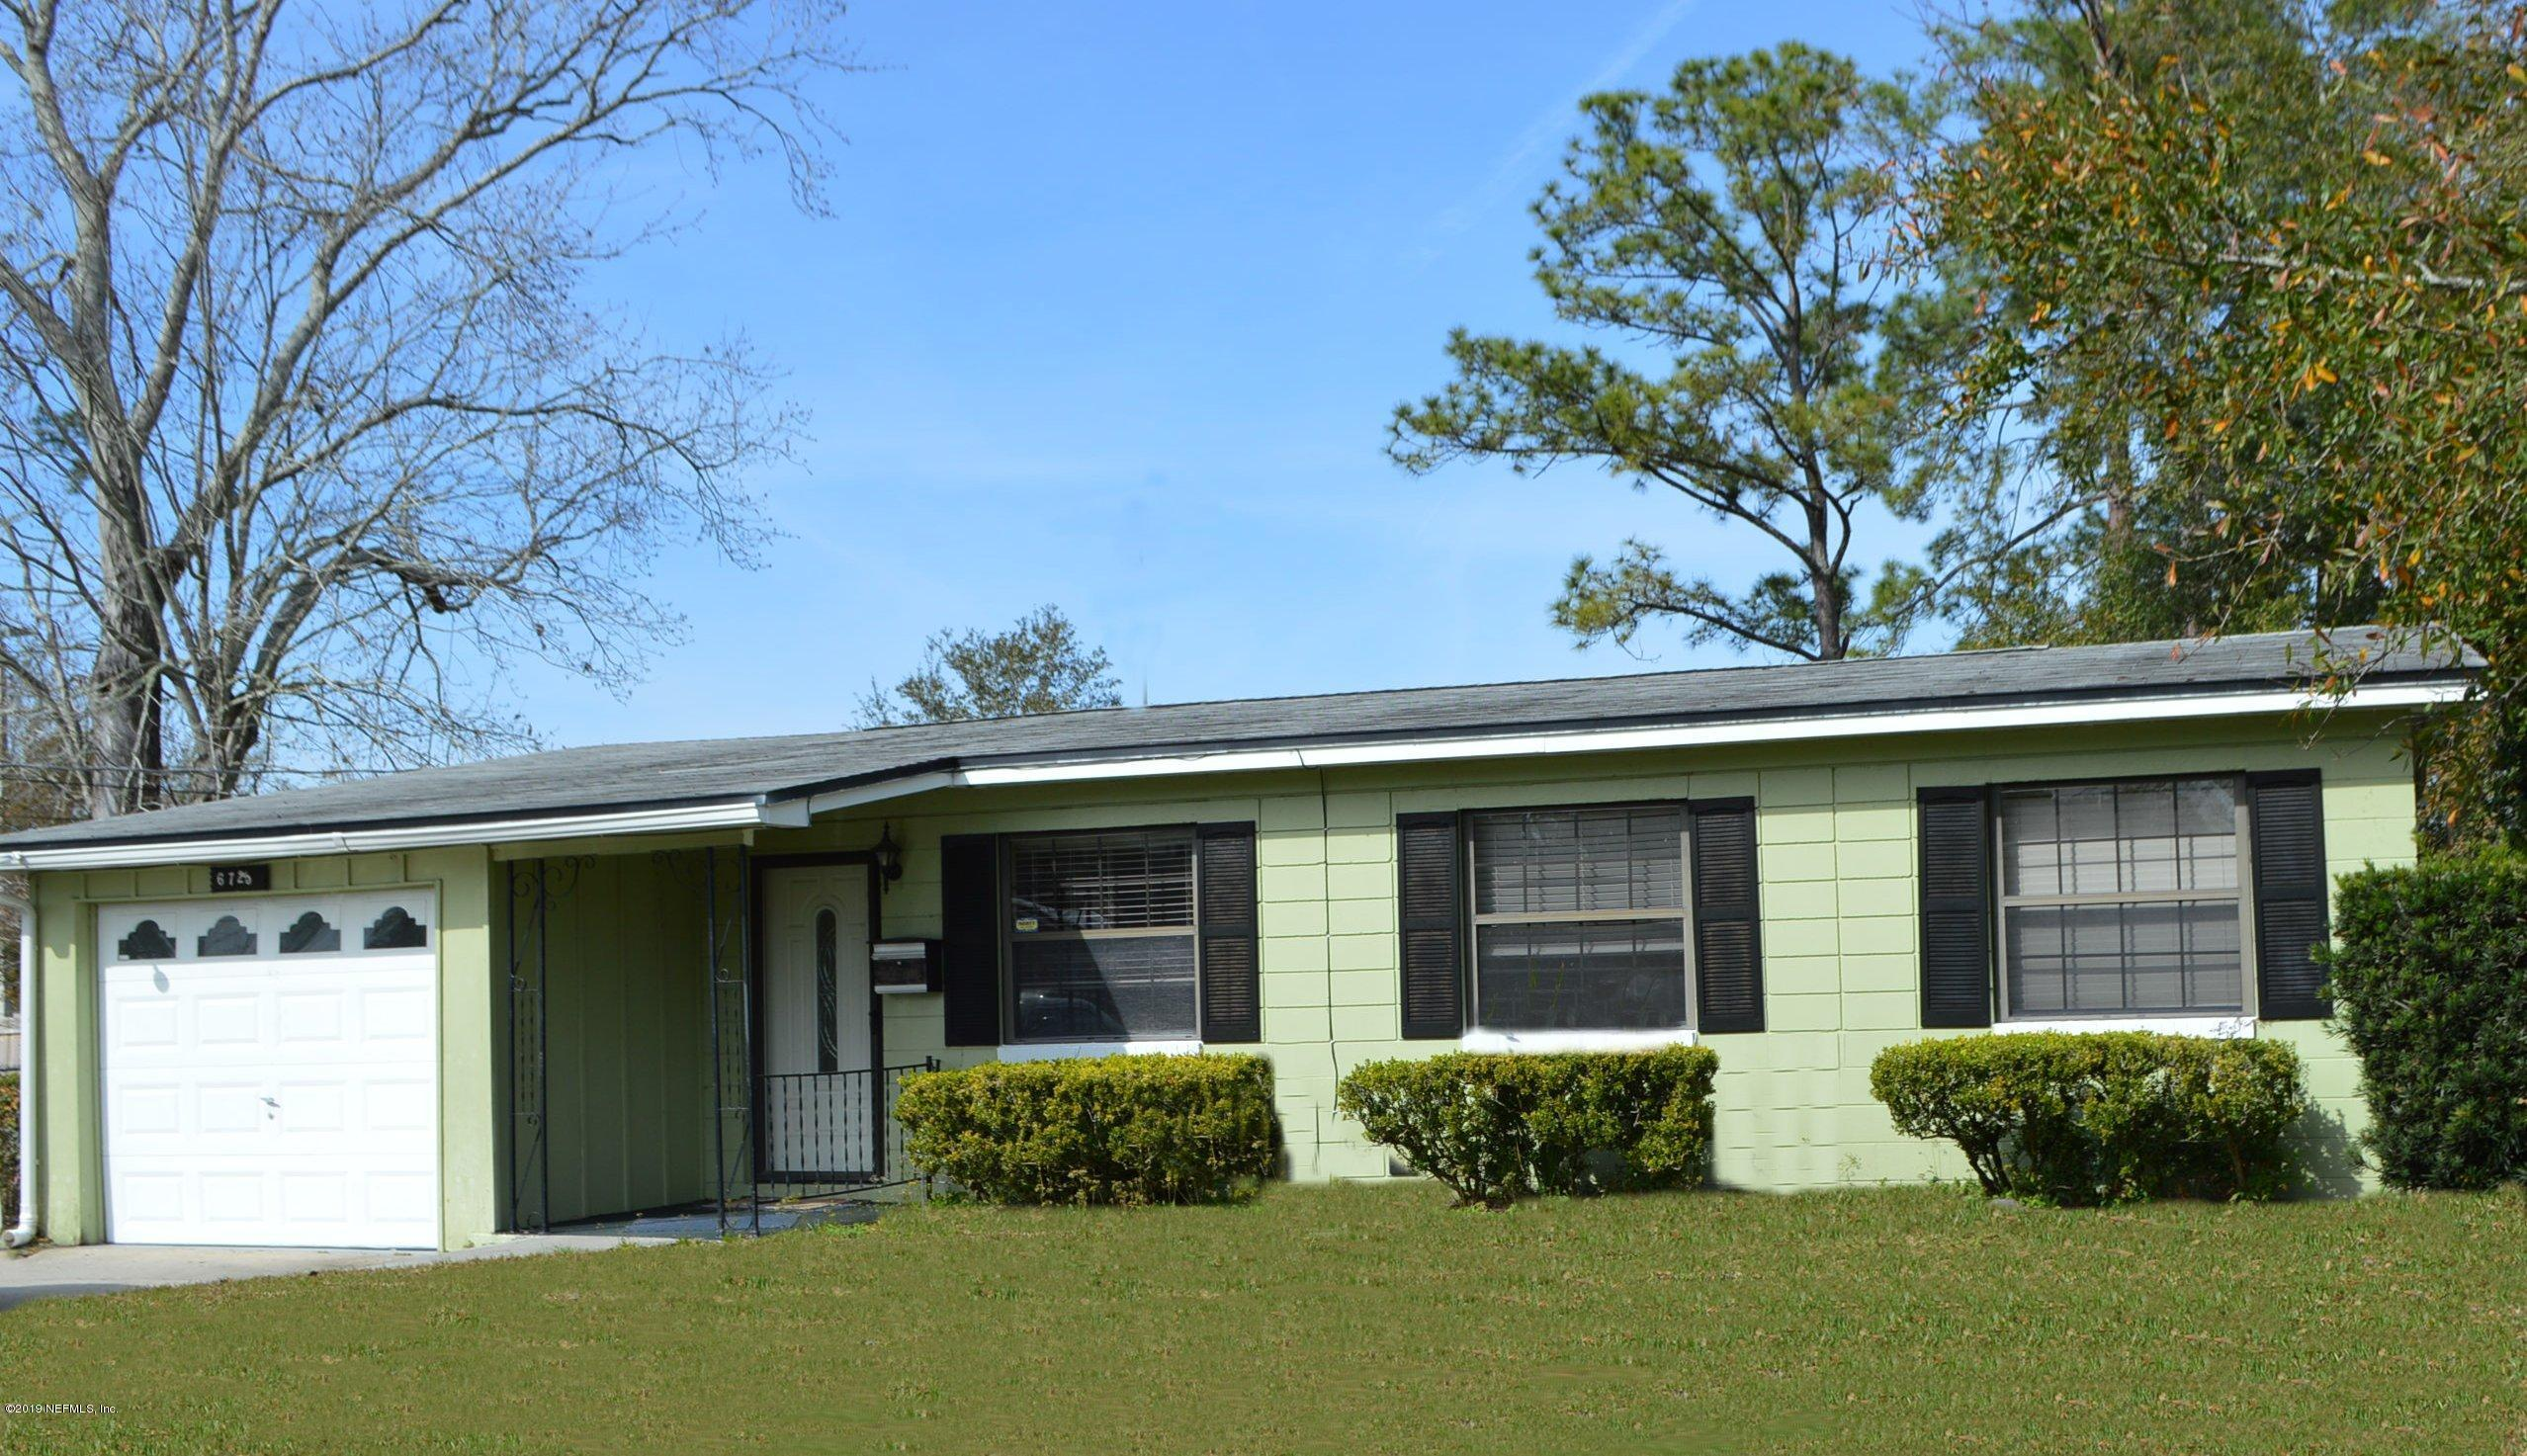 6725 WURN PARK- JACKSONVILLE- FLORIDA 32216, 3 Bedrooms Bedrooms, ,1 BathroomBathrooms,Residential - single family,For sale,WURN PARK,977540